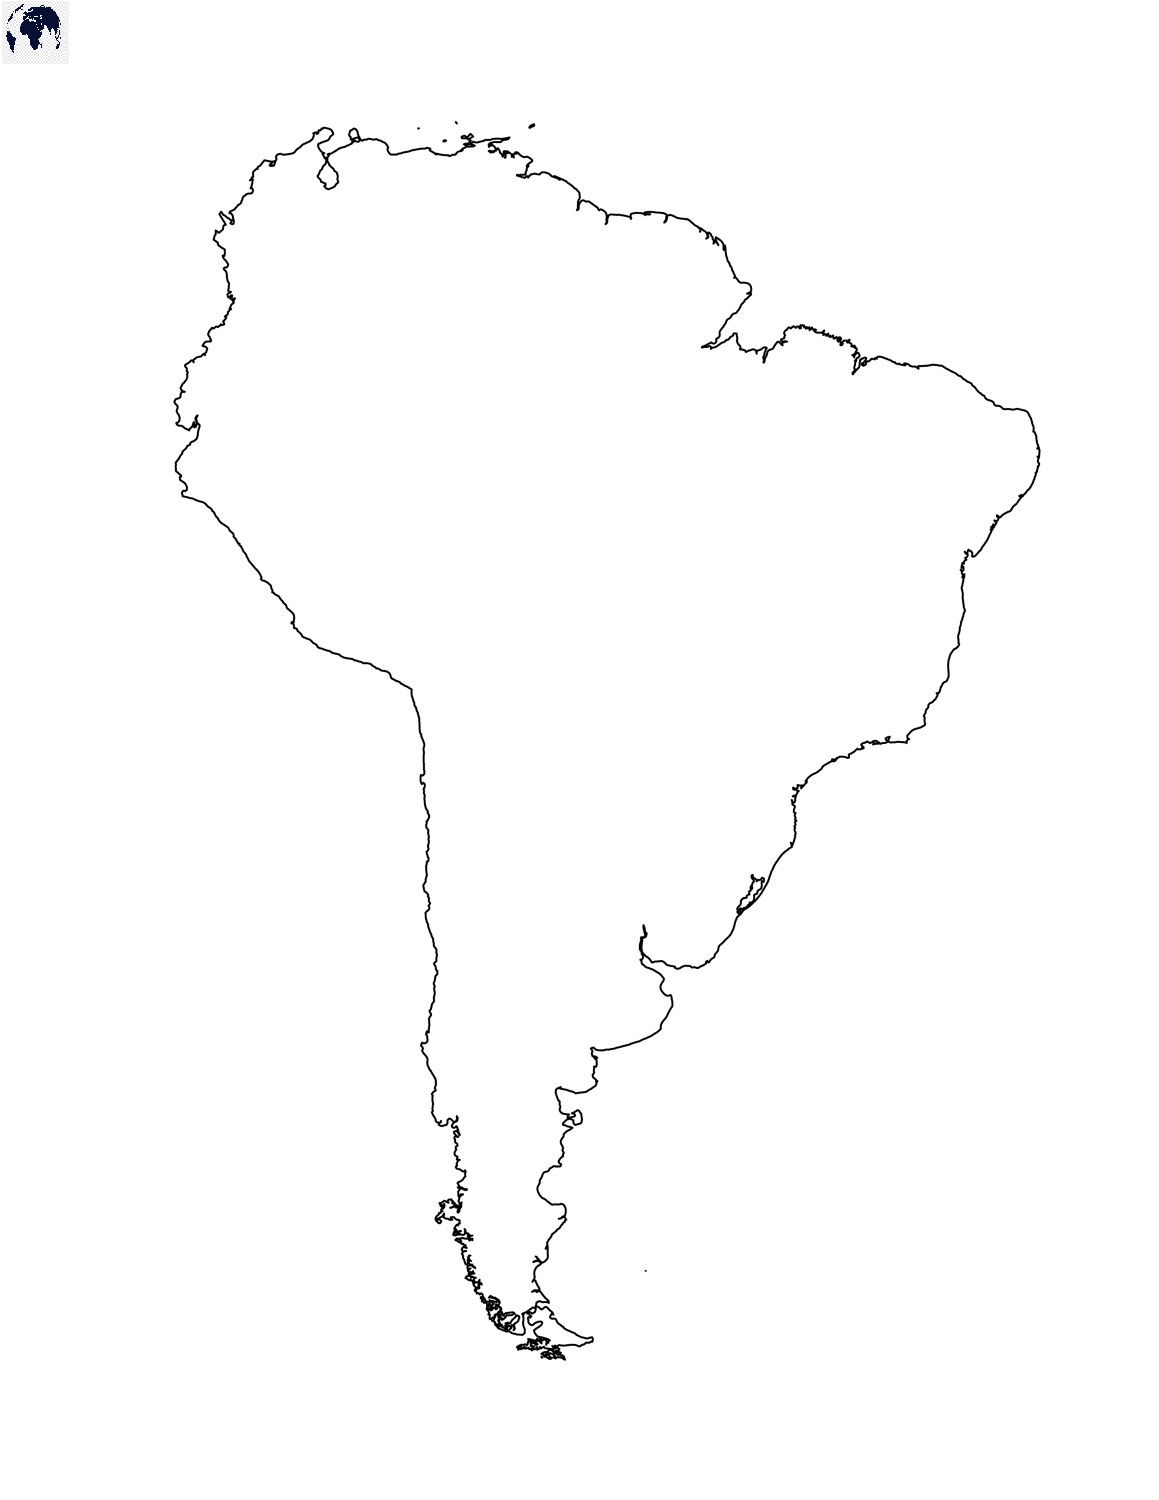 Blank South America Map – Outline